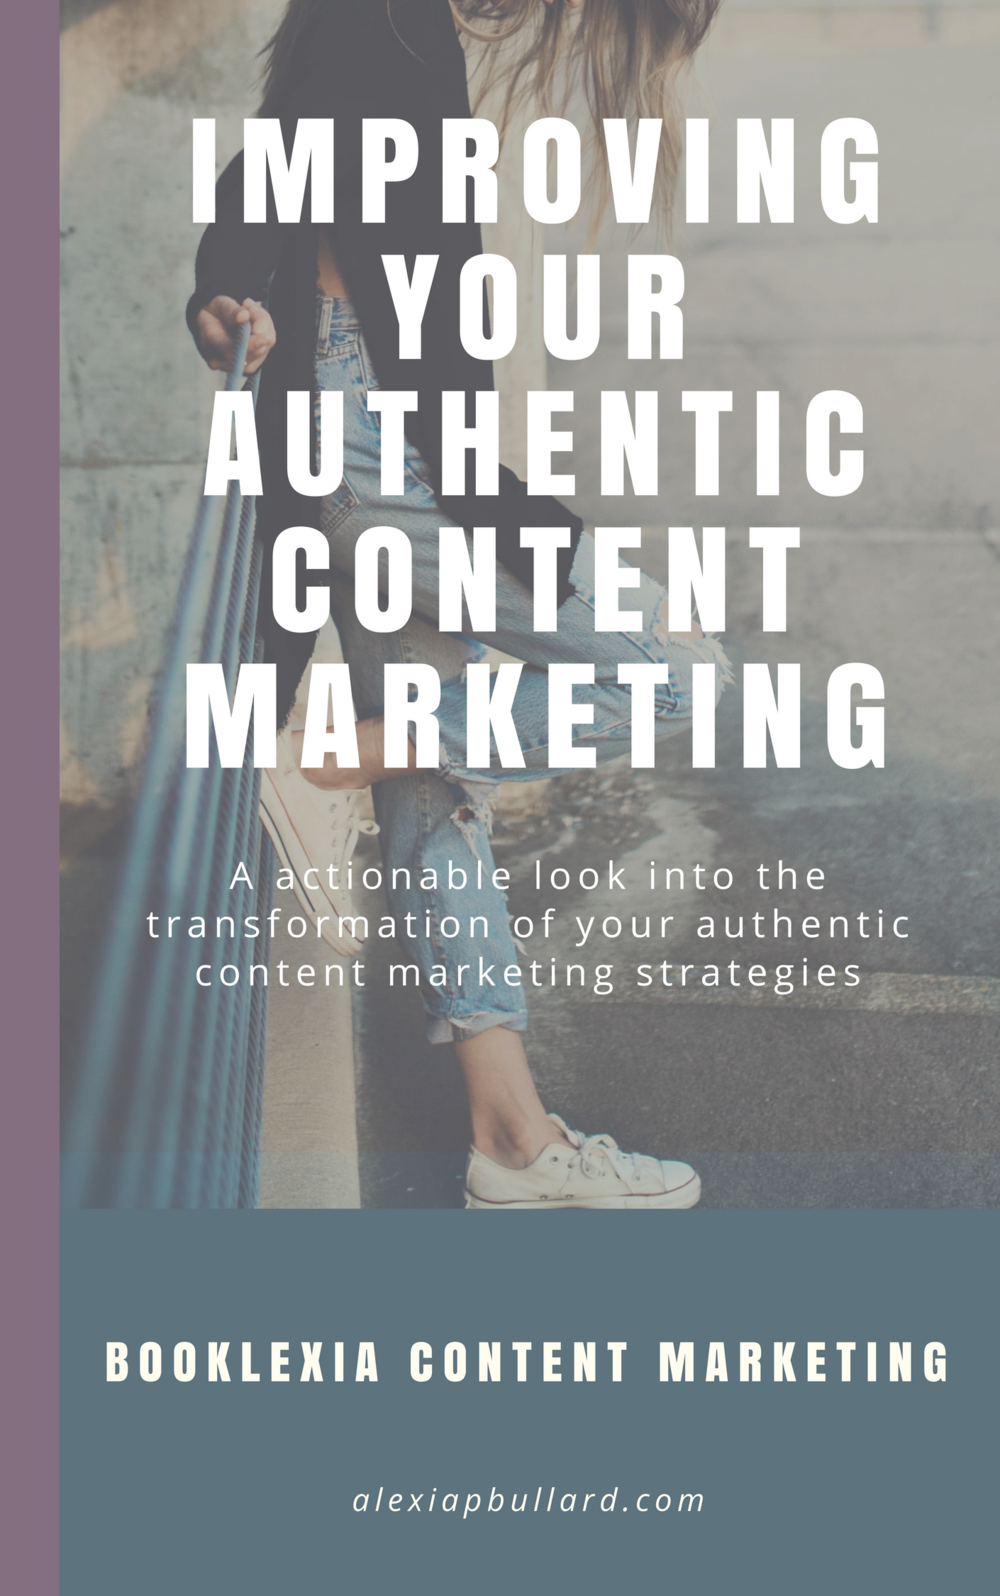 How to improve authentic content marketing | Booklexia Content Marketing